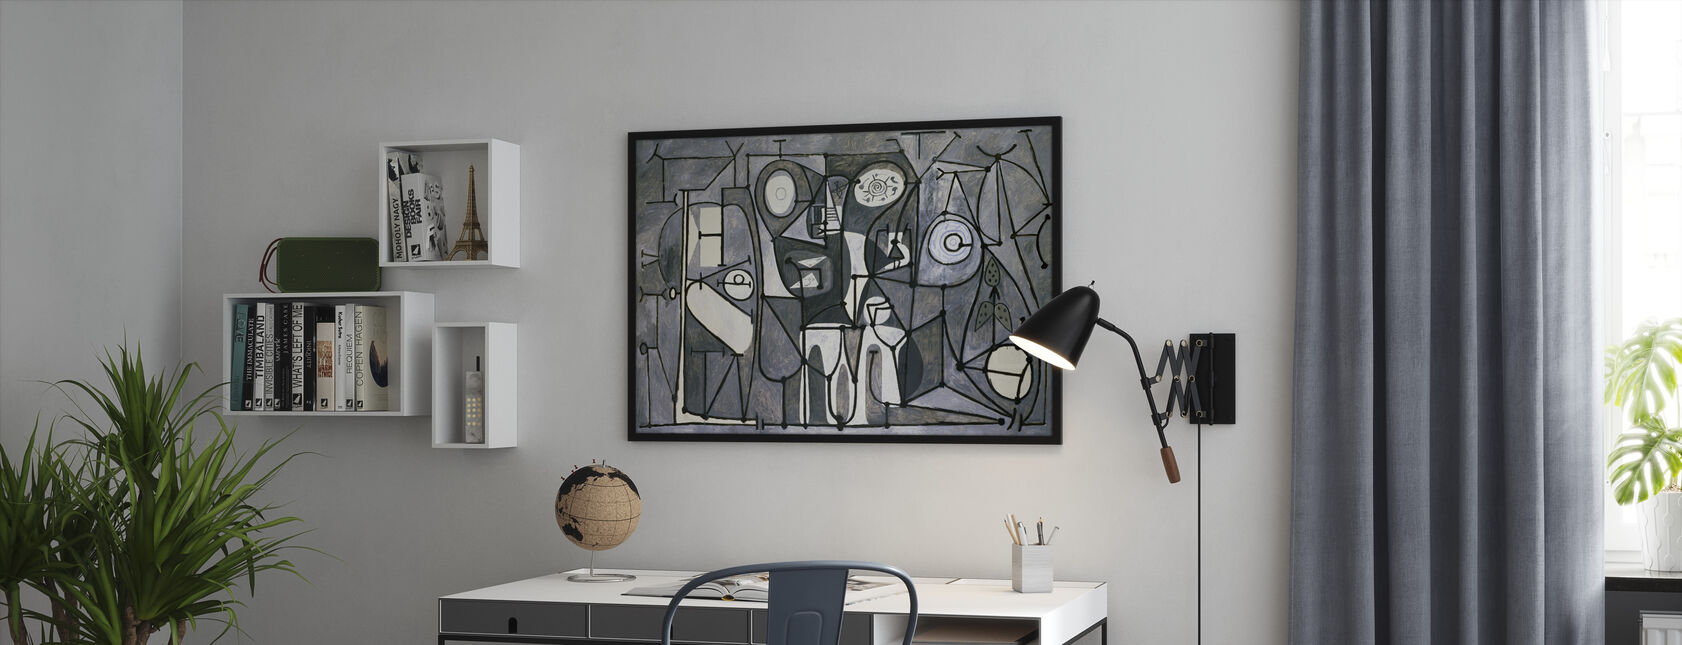 Kitchen - Pablo Picasso - Framed print - Office